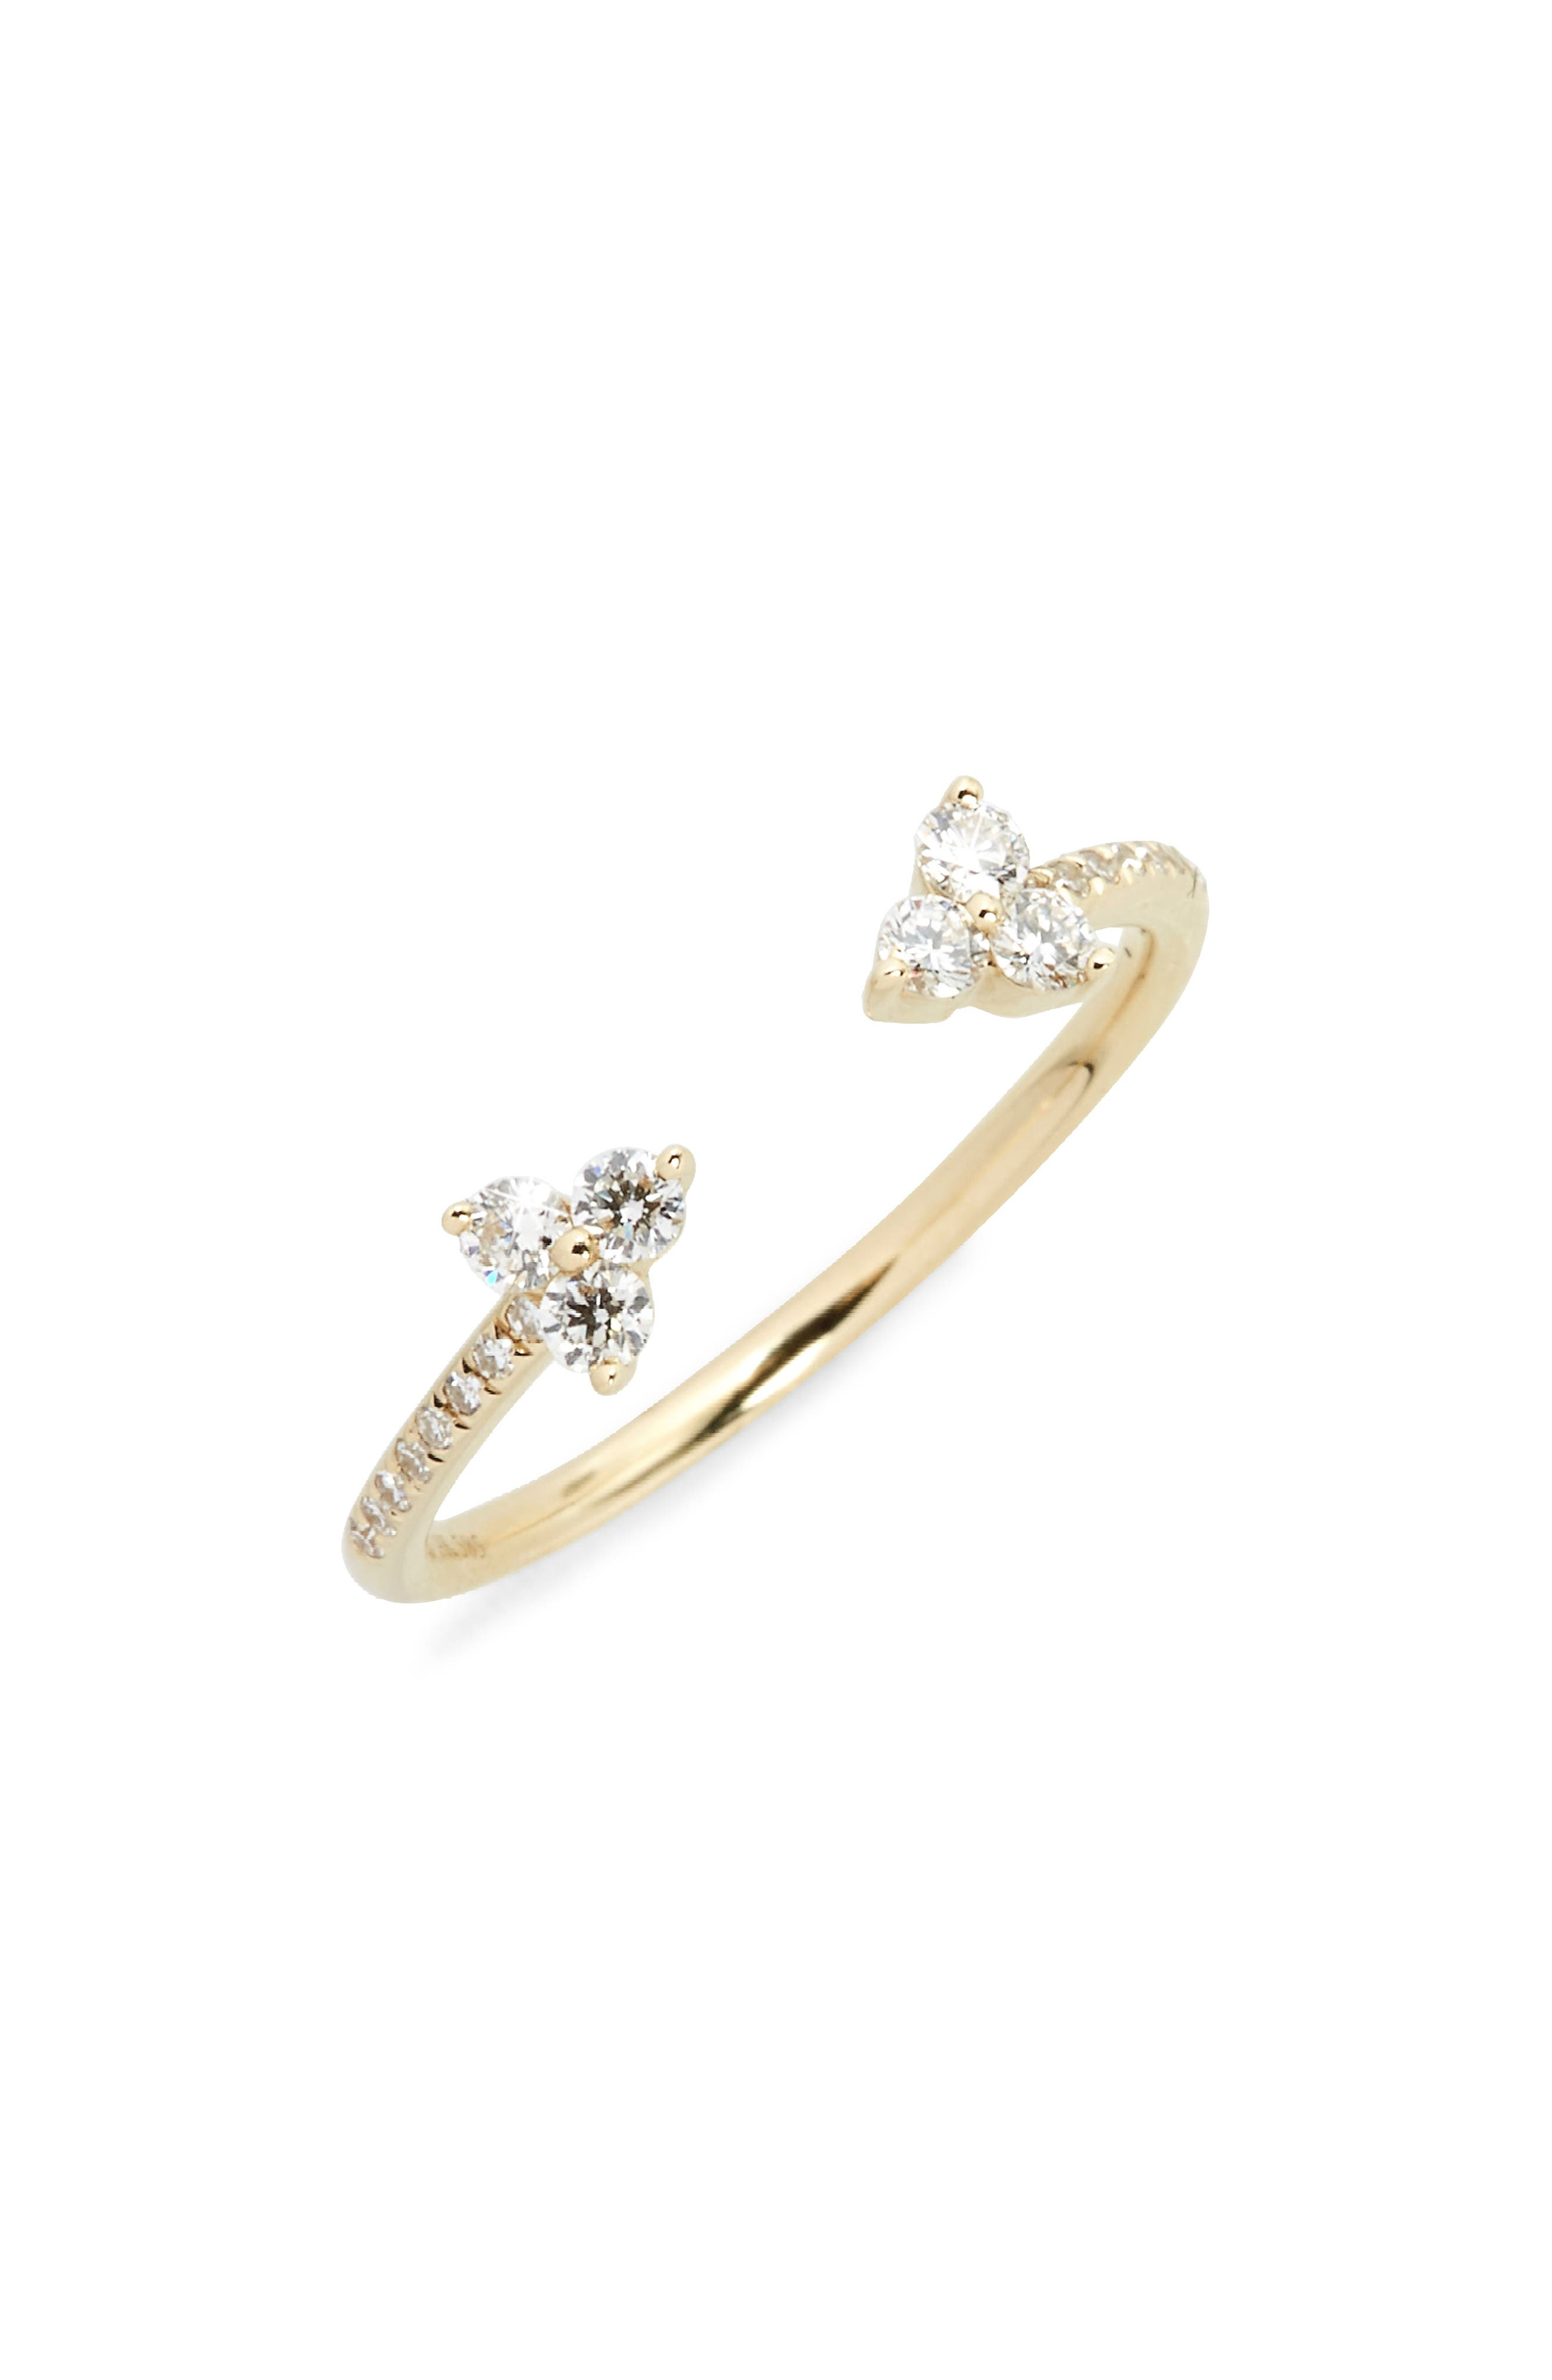 Main Image - EF COLLECTION Open Diamond Ring